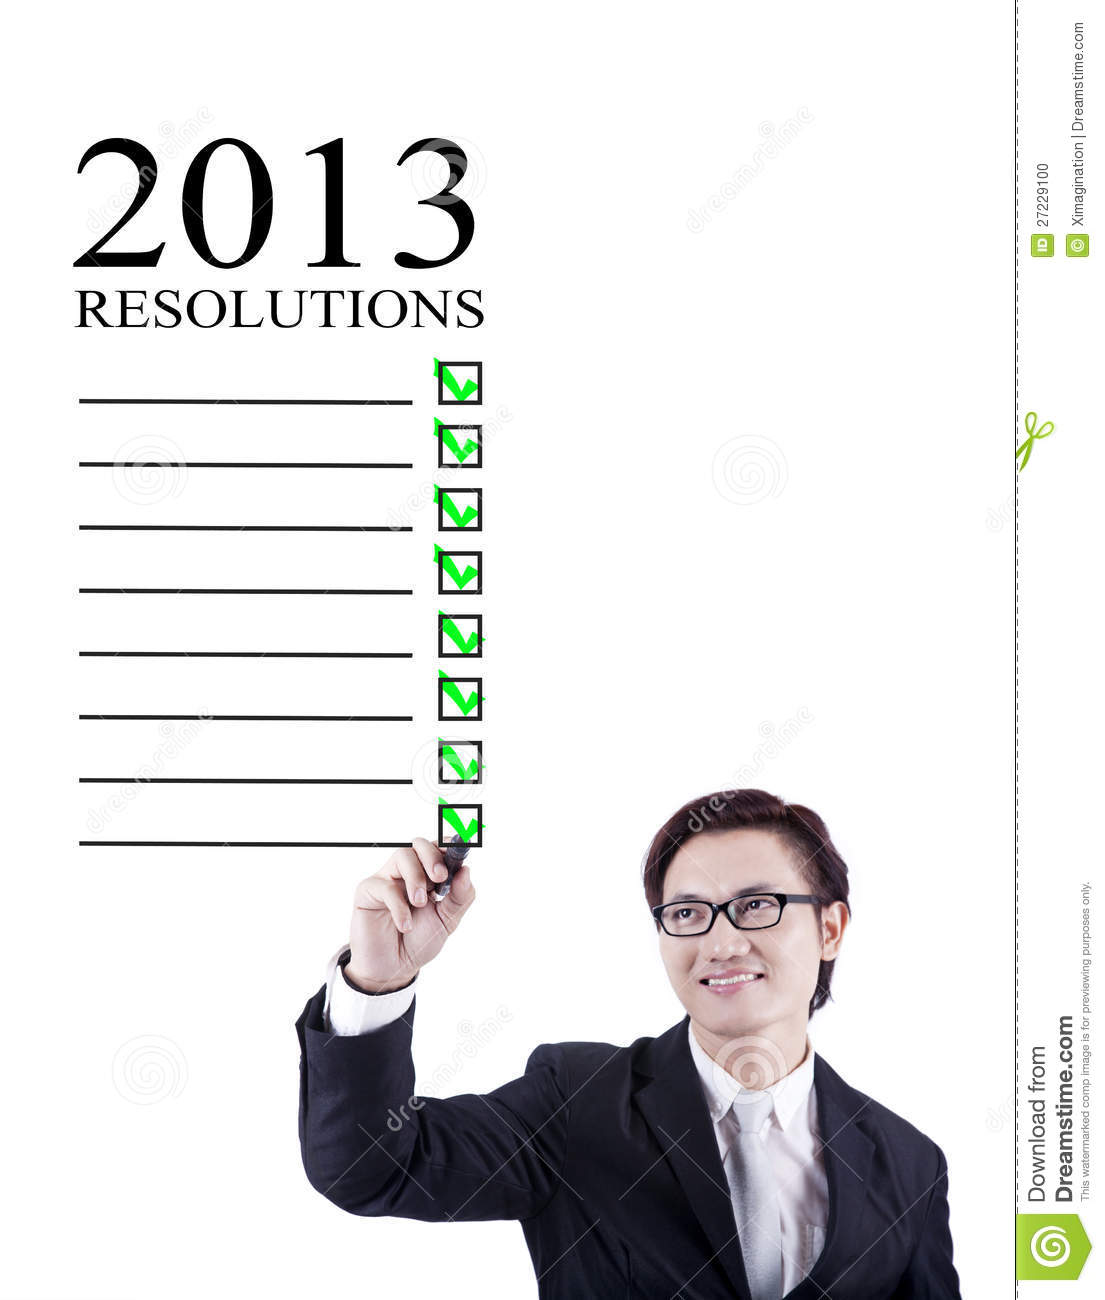 Businessman 2013 resolutions isolated in white